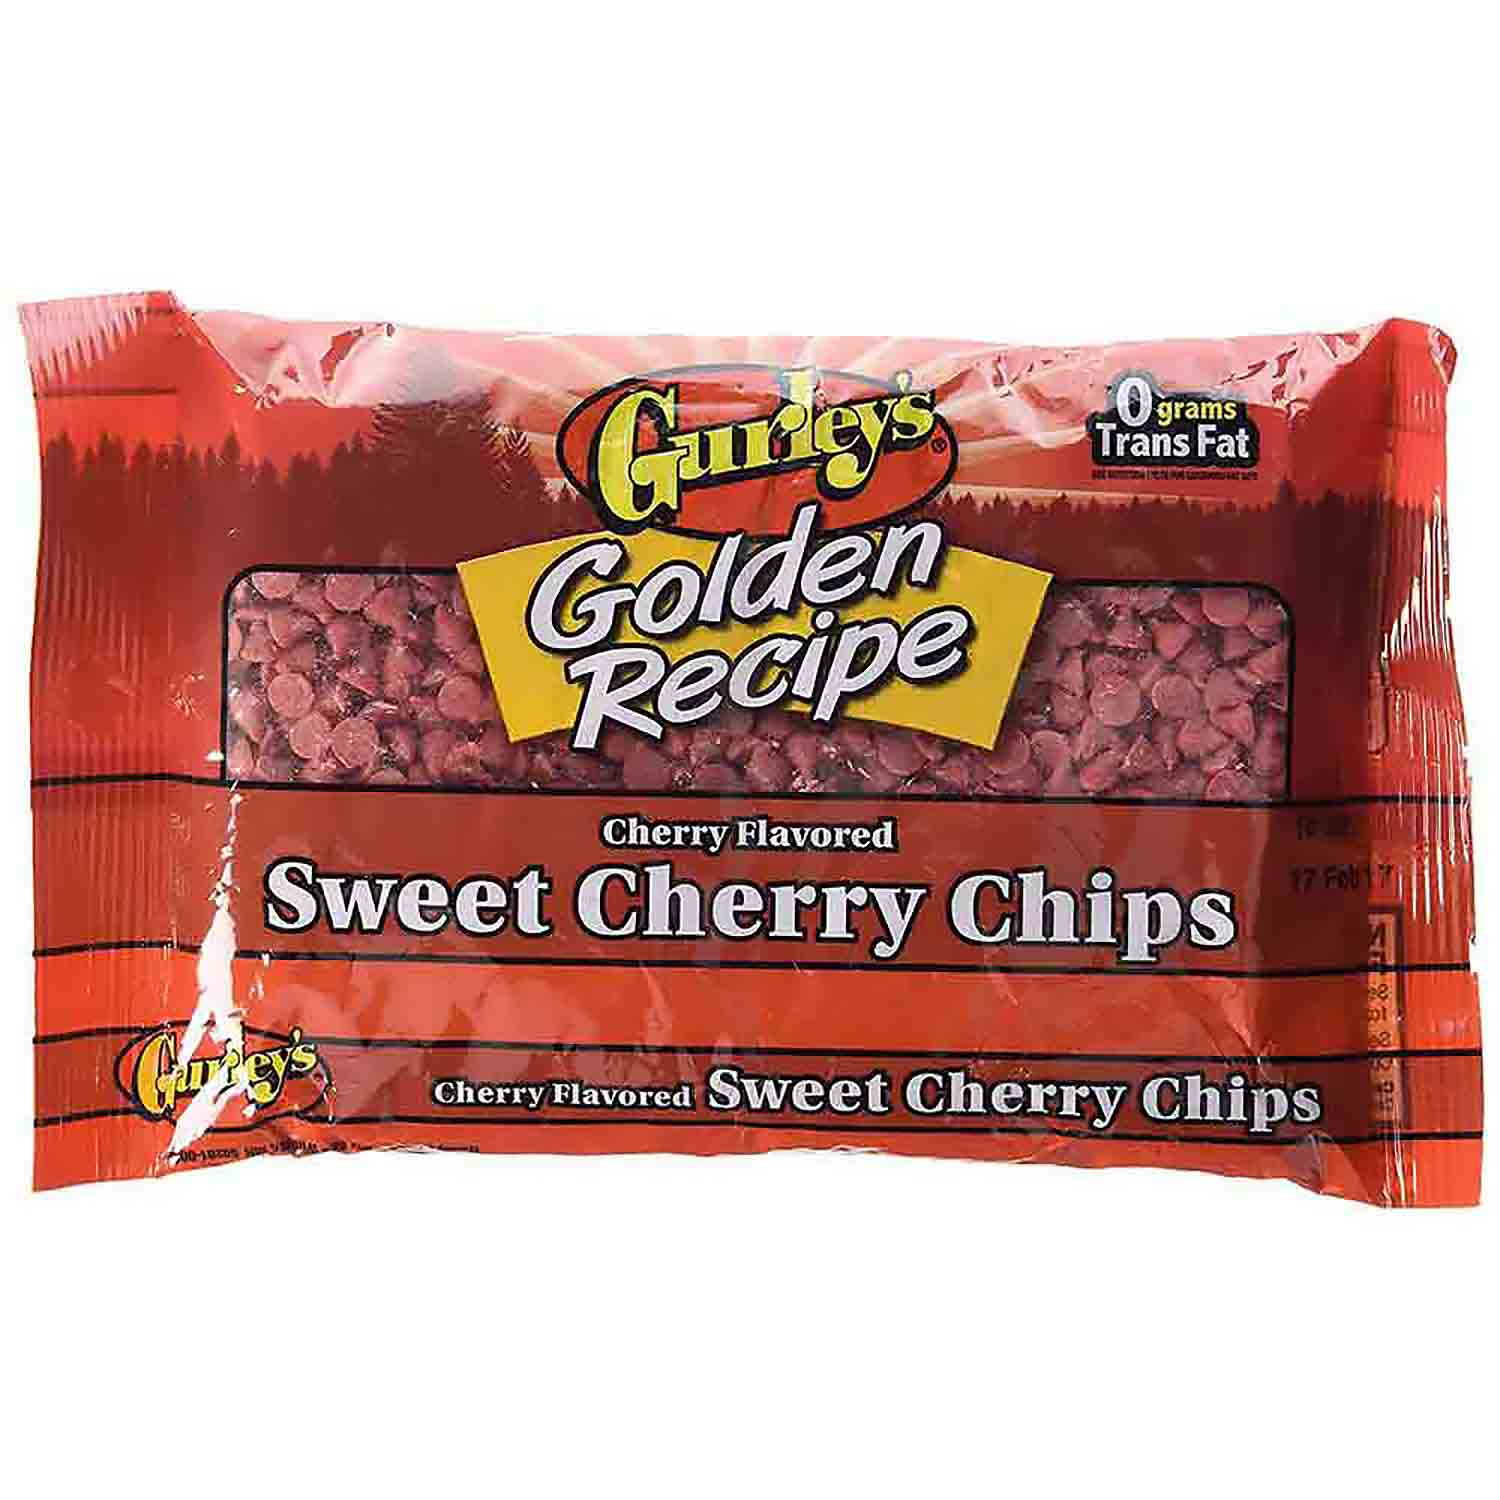 Sweet Cherry Chips